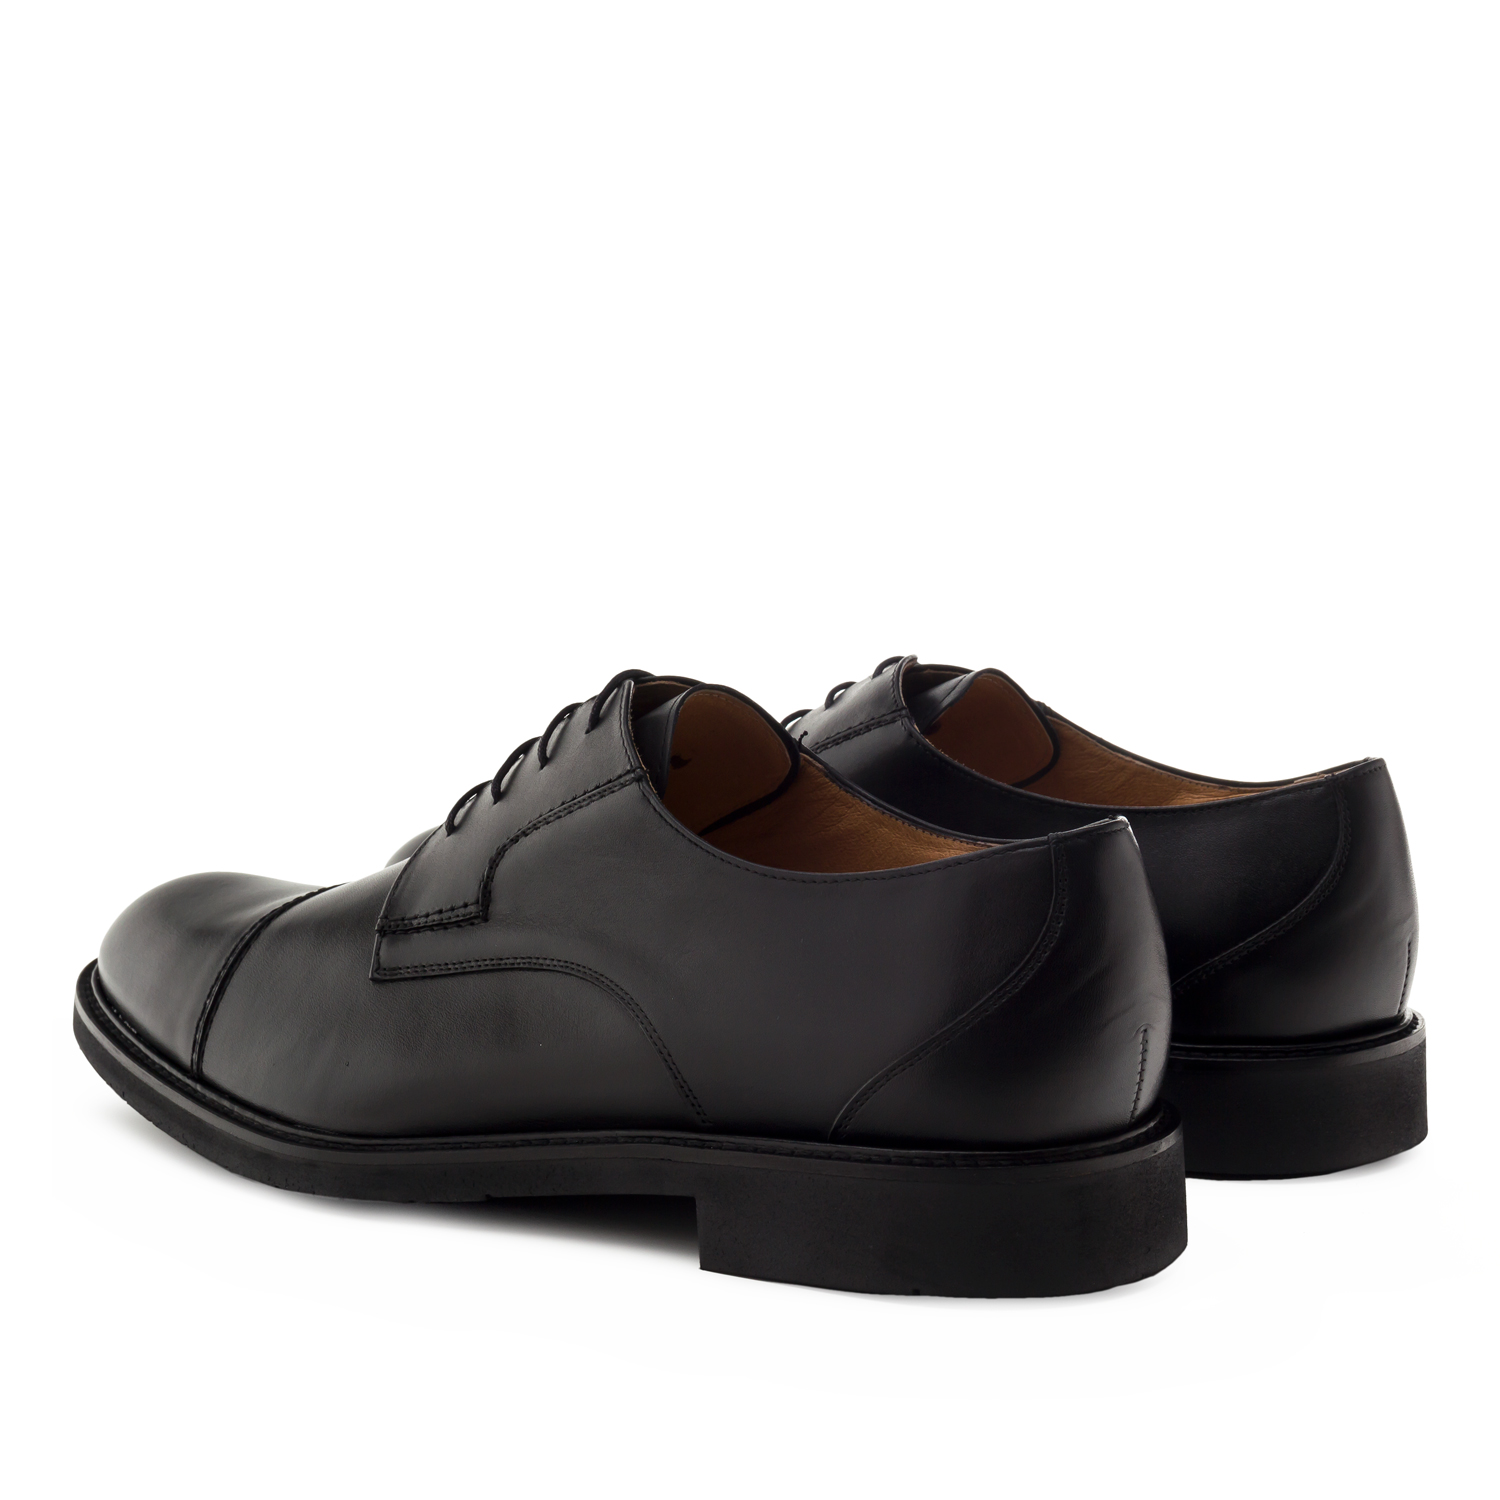 Mens Black Leather Lace-up Shoes